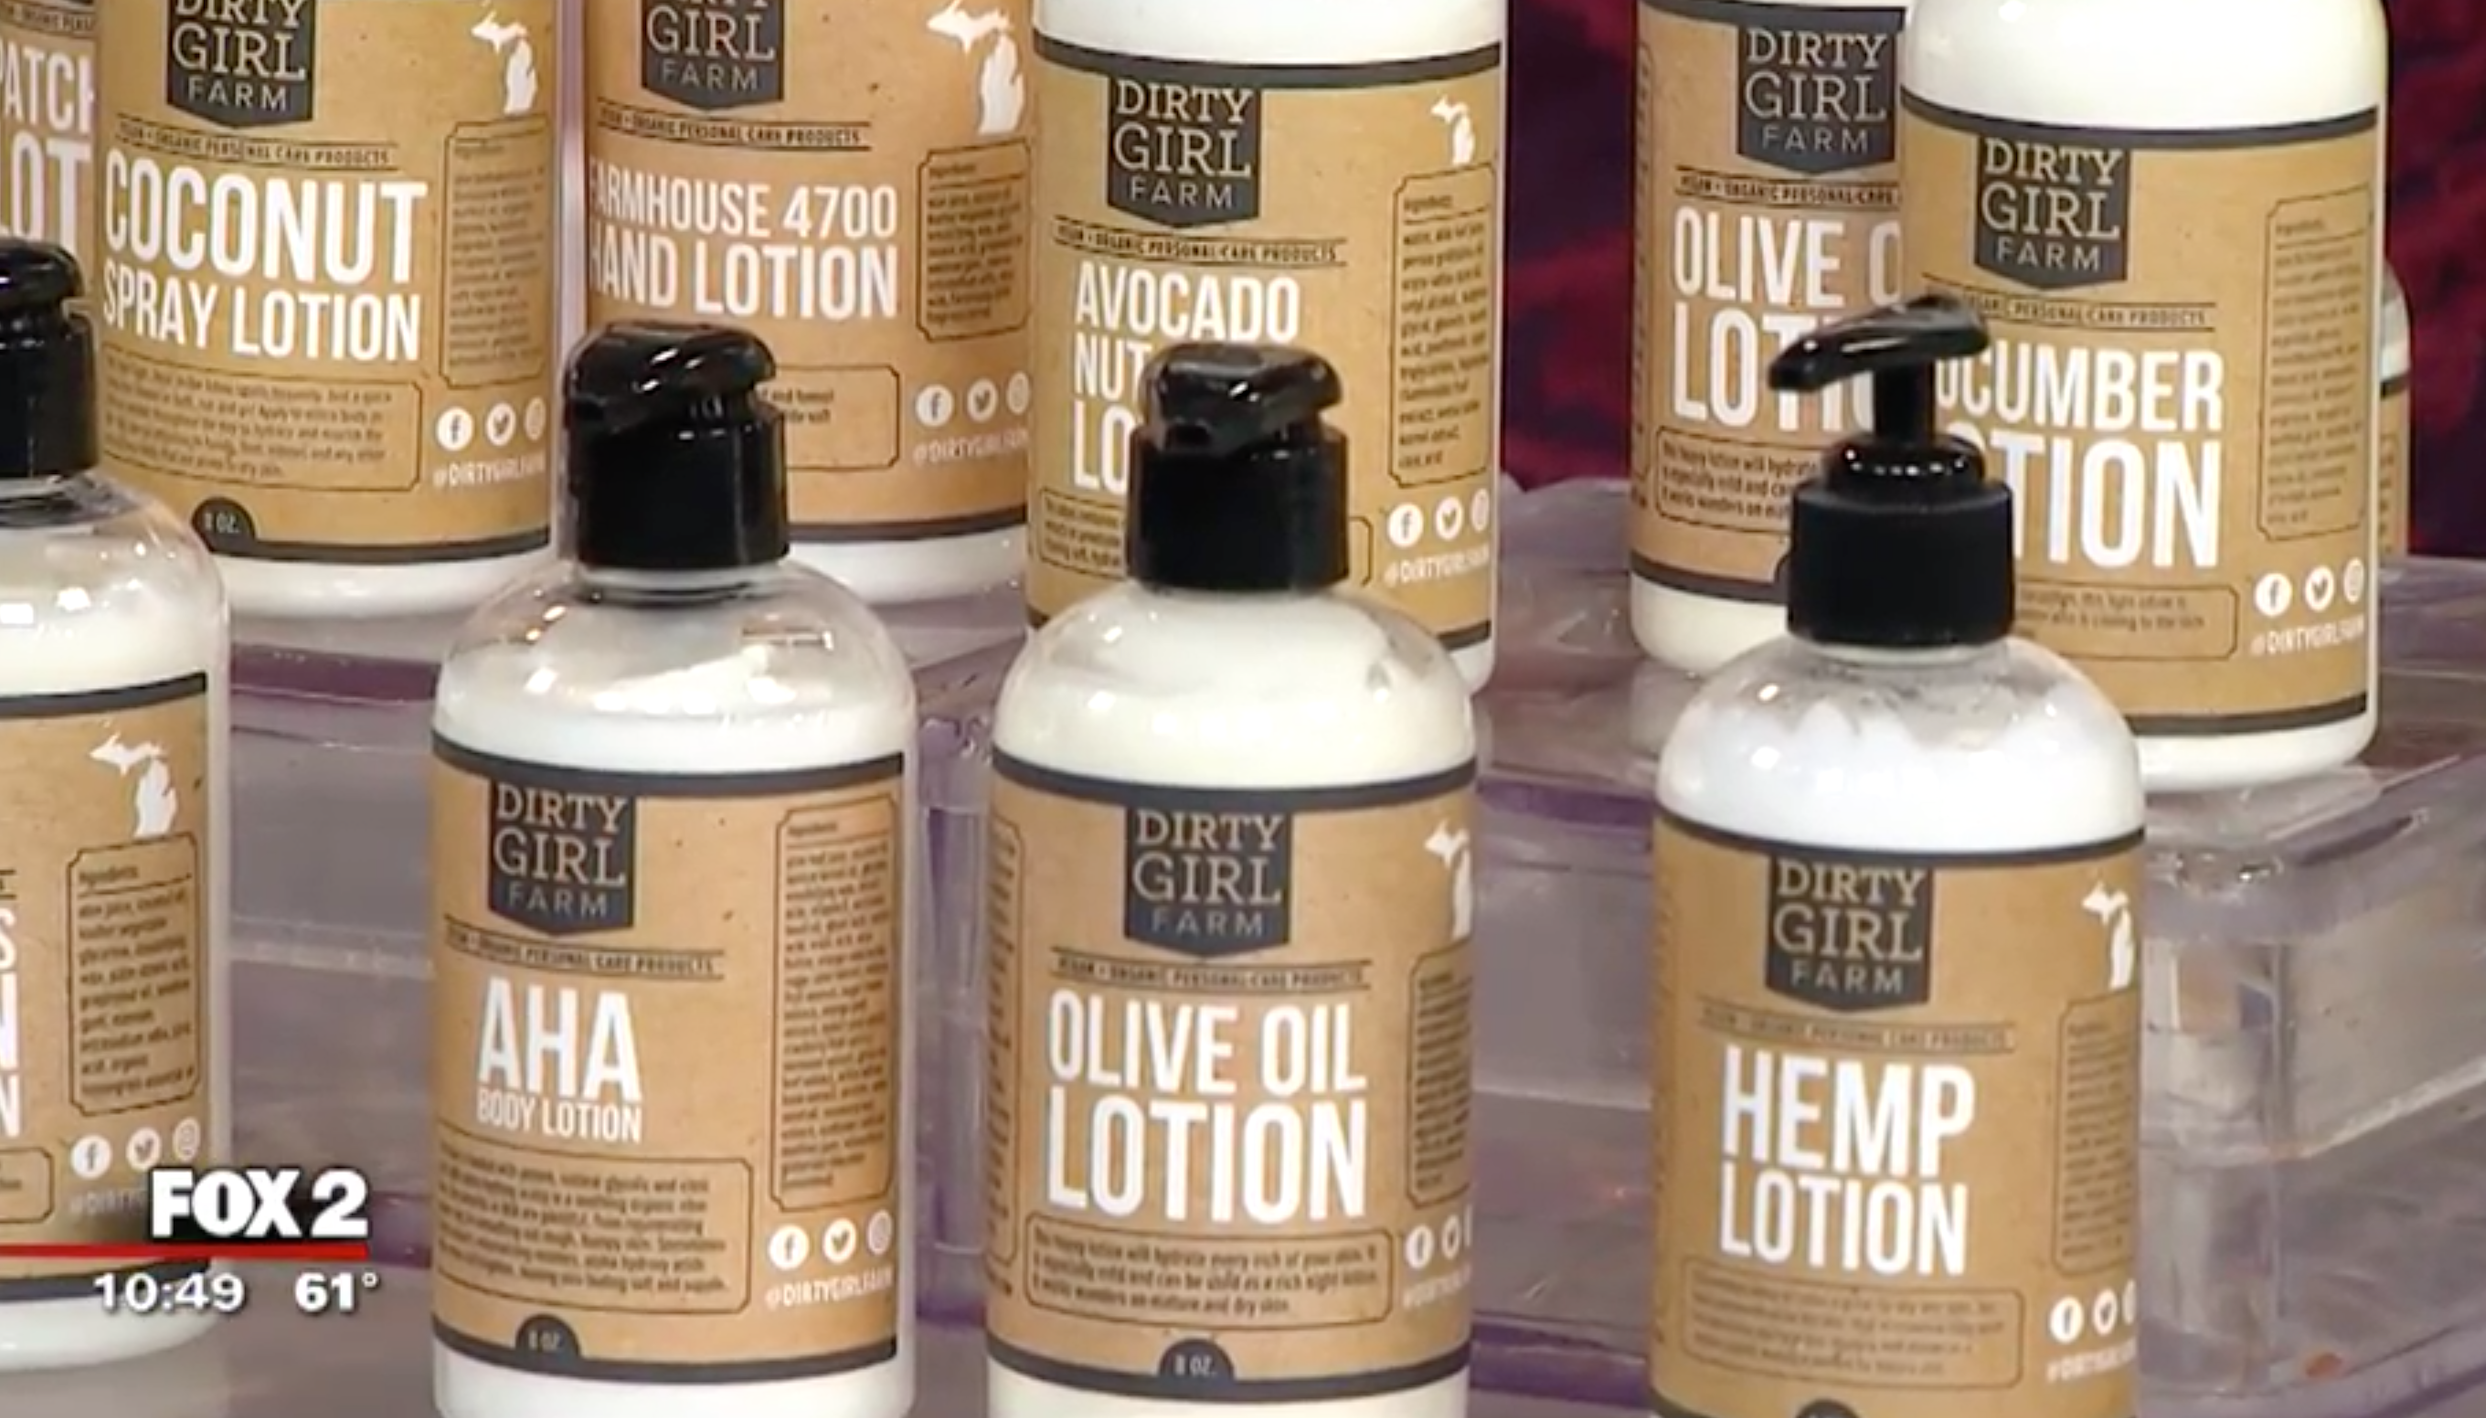 Dirty Girl Farm's plant-based lotions help skin recover from sun exposure.